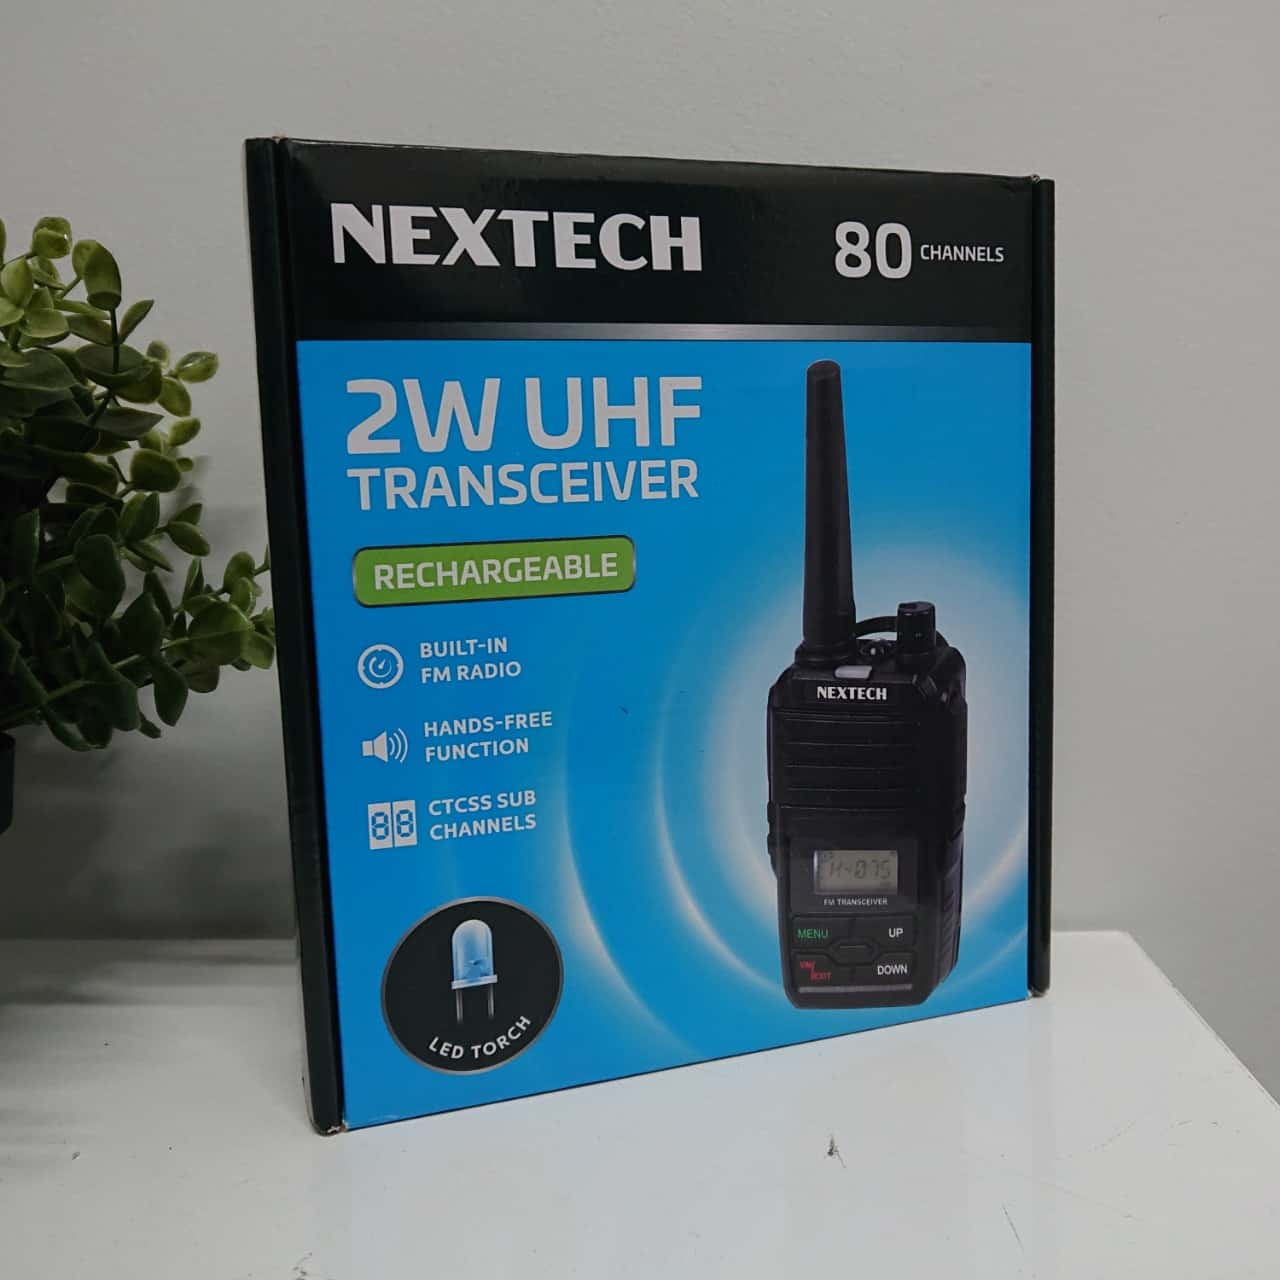 NEW Nextech 2W UHF Radio Transceiver with FM & LED Torch